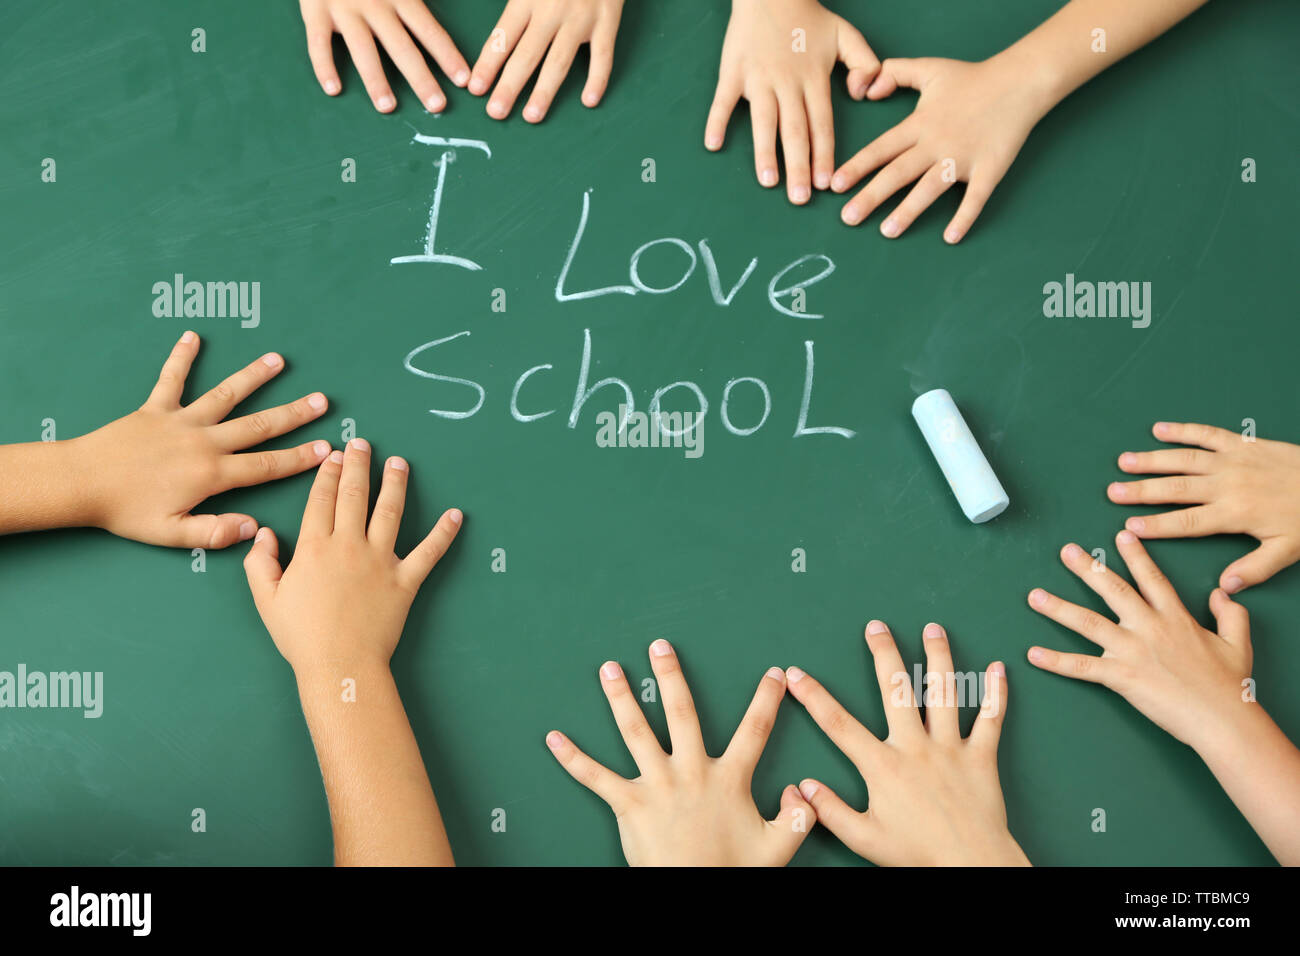 Children hands on blackboard background - Stock Image